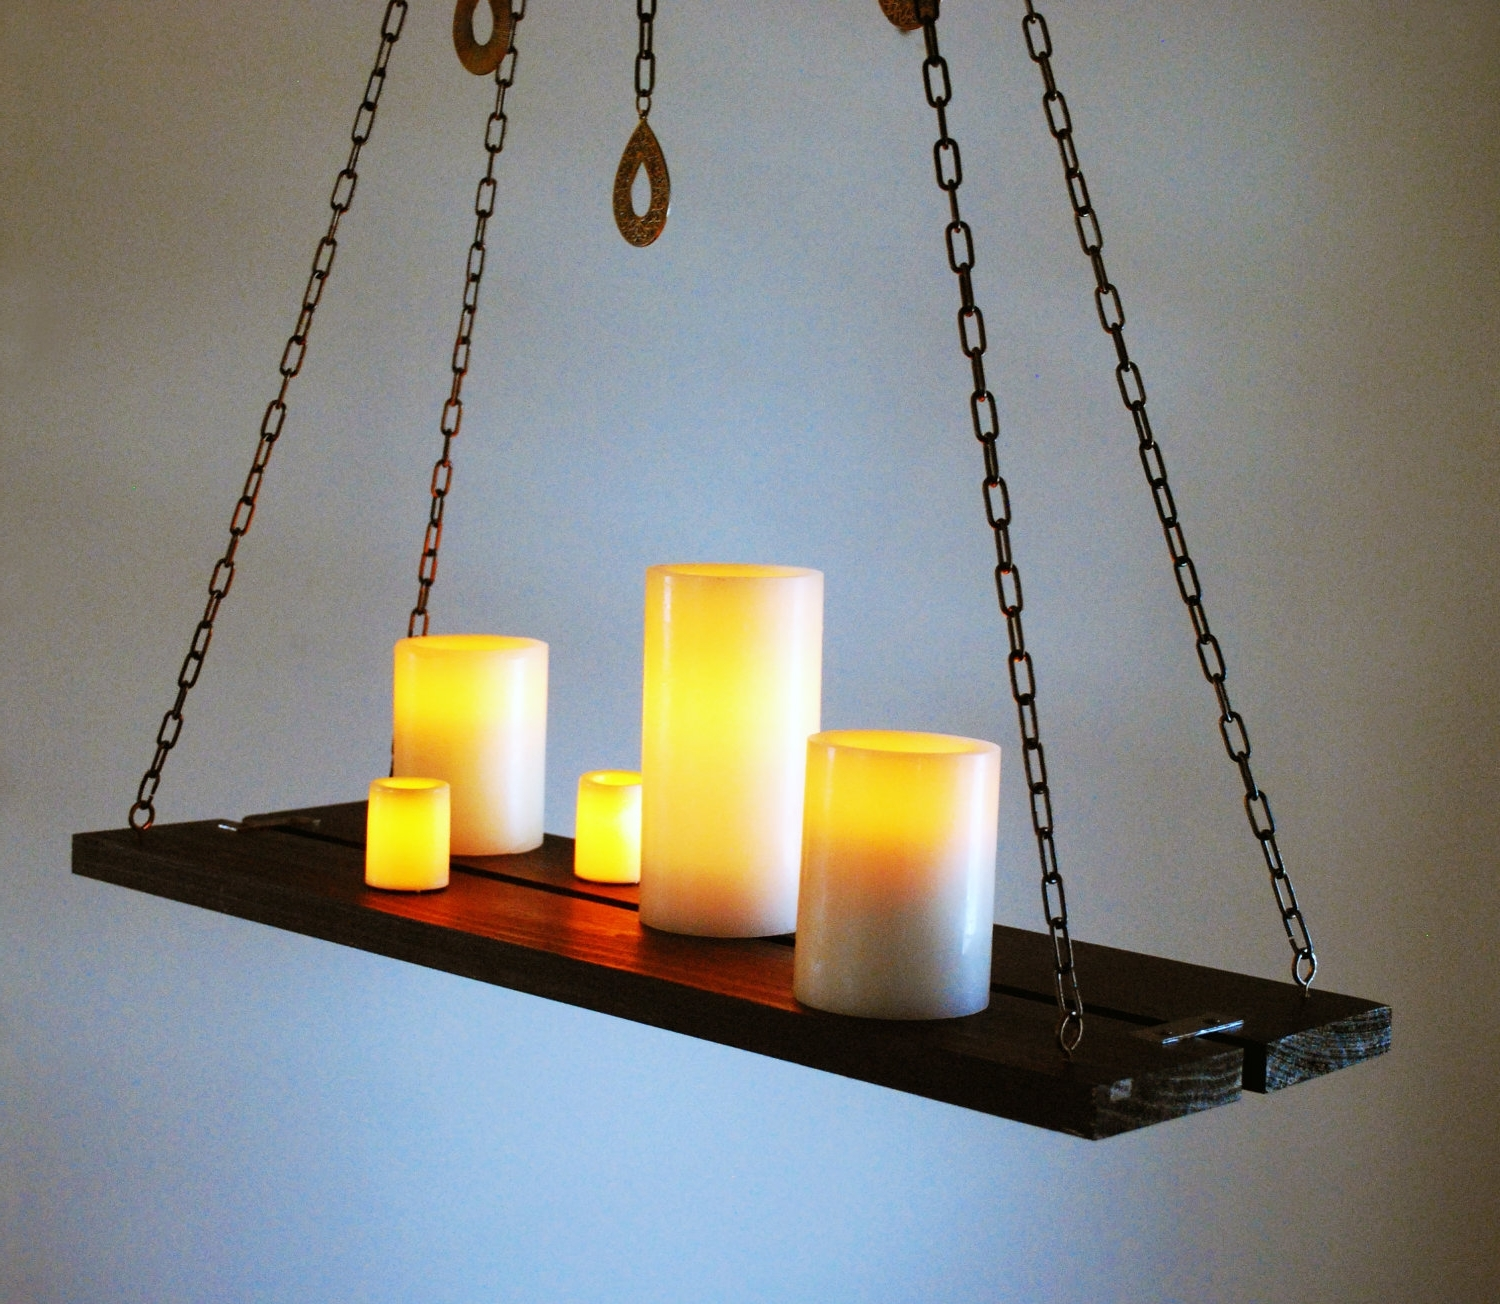 2018 Bedroom : Elegant Hanging Candle Chandeliers For Great Home Lighting Within Hanging Candle Chandeliers (View 12 of 15)